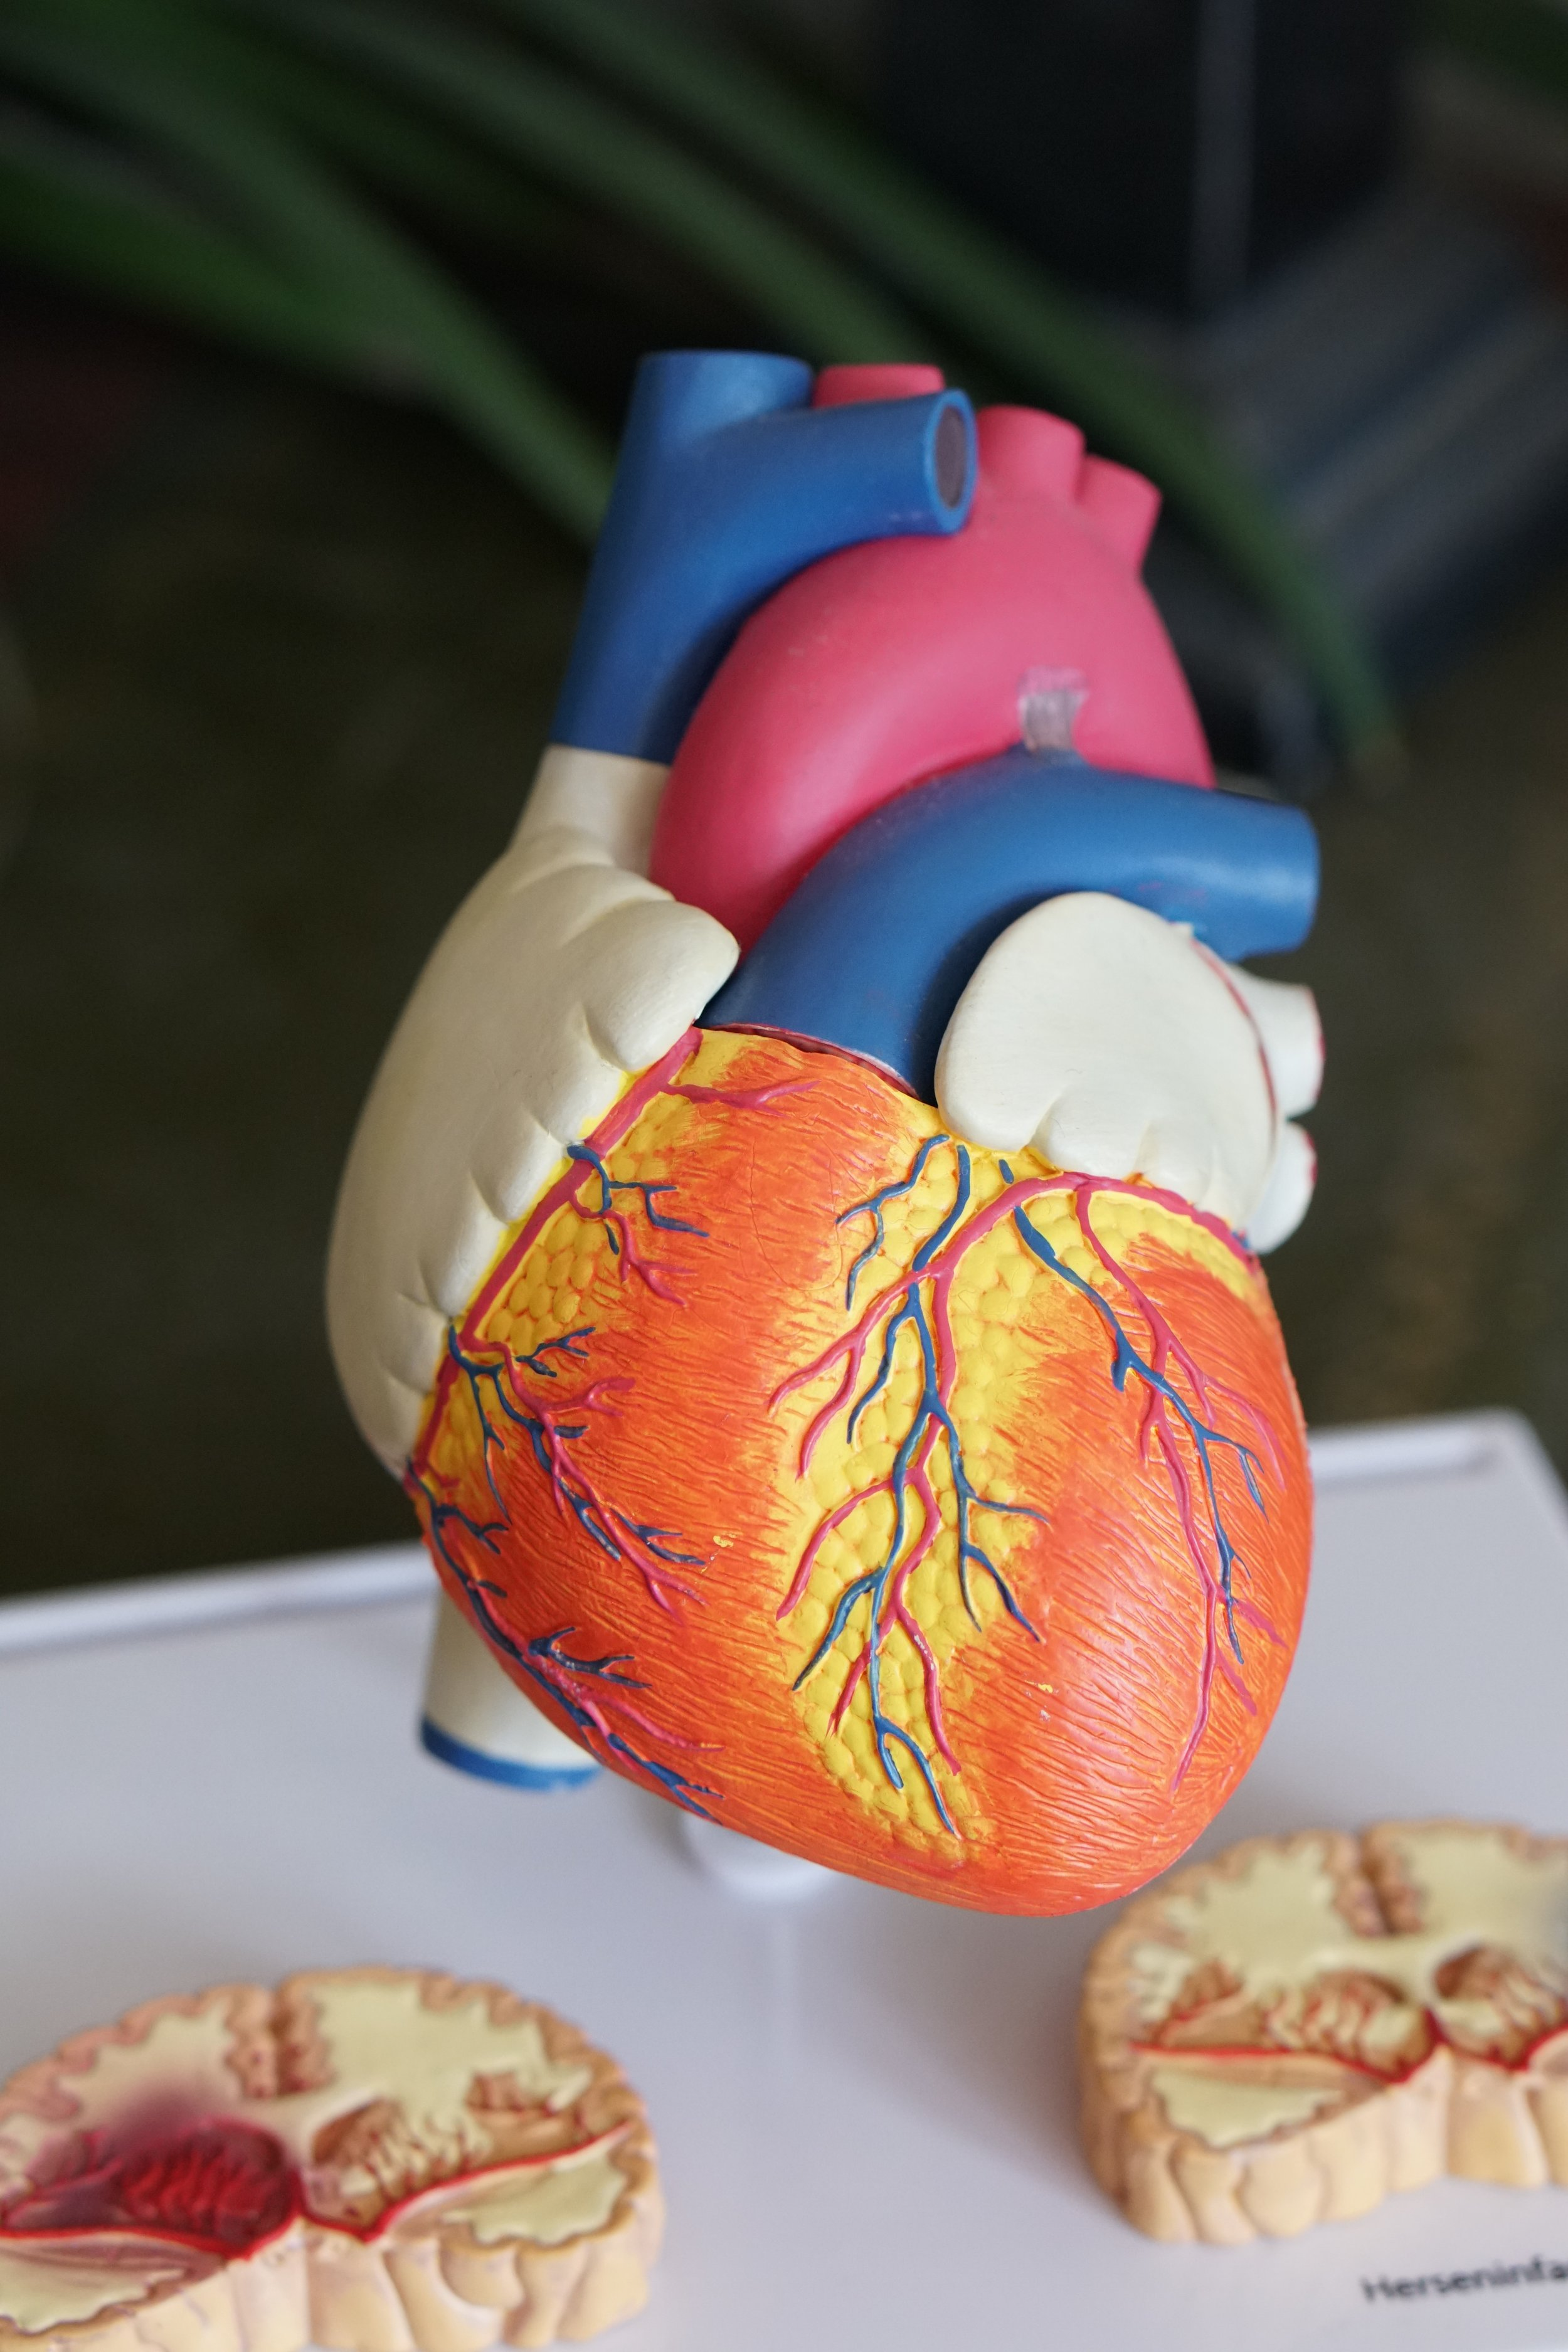 Photo of a model of the heart and major arteries and veins.